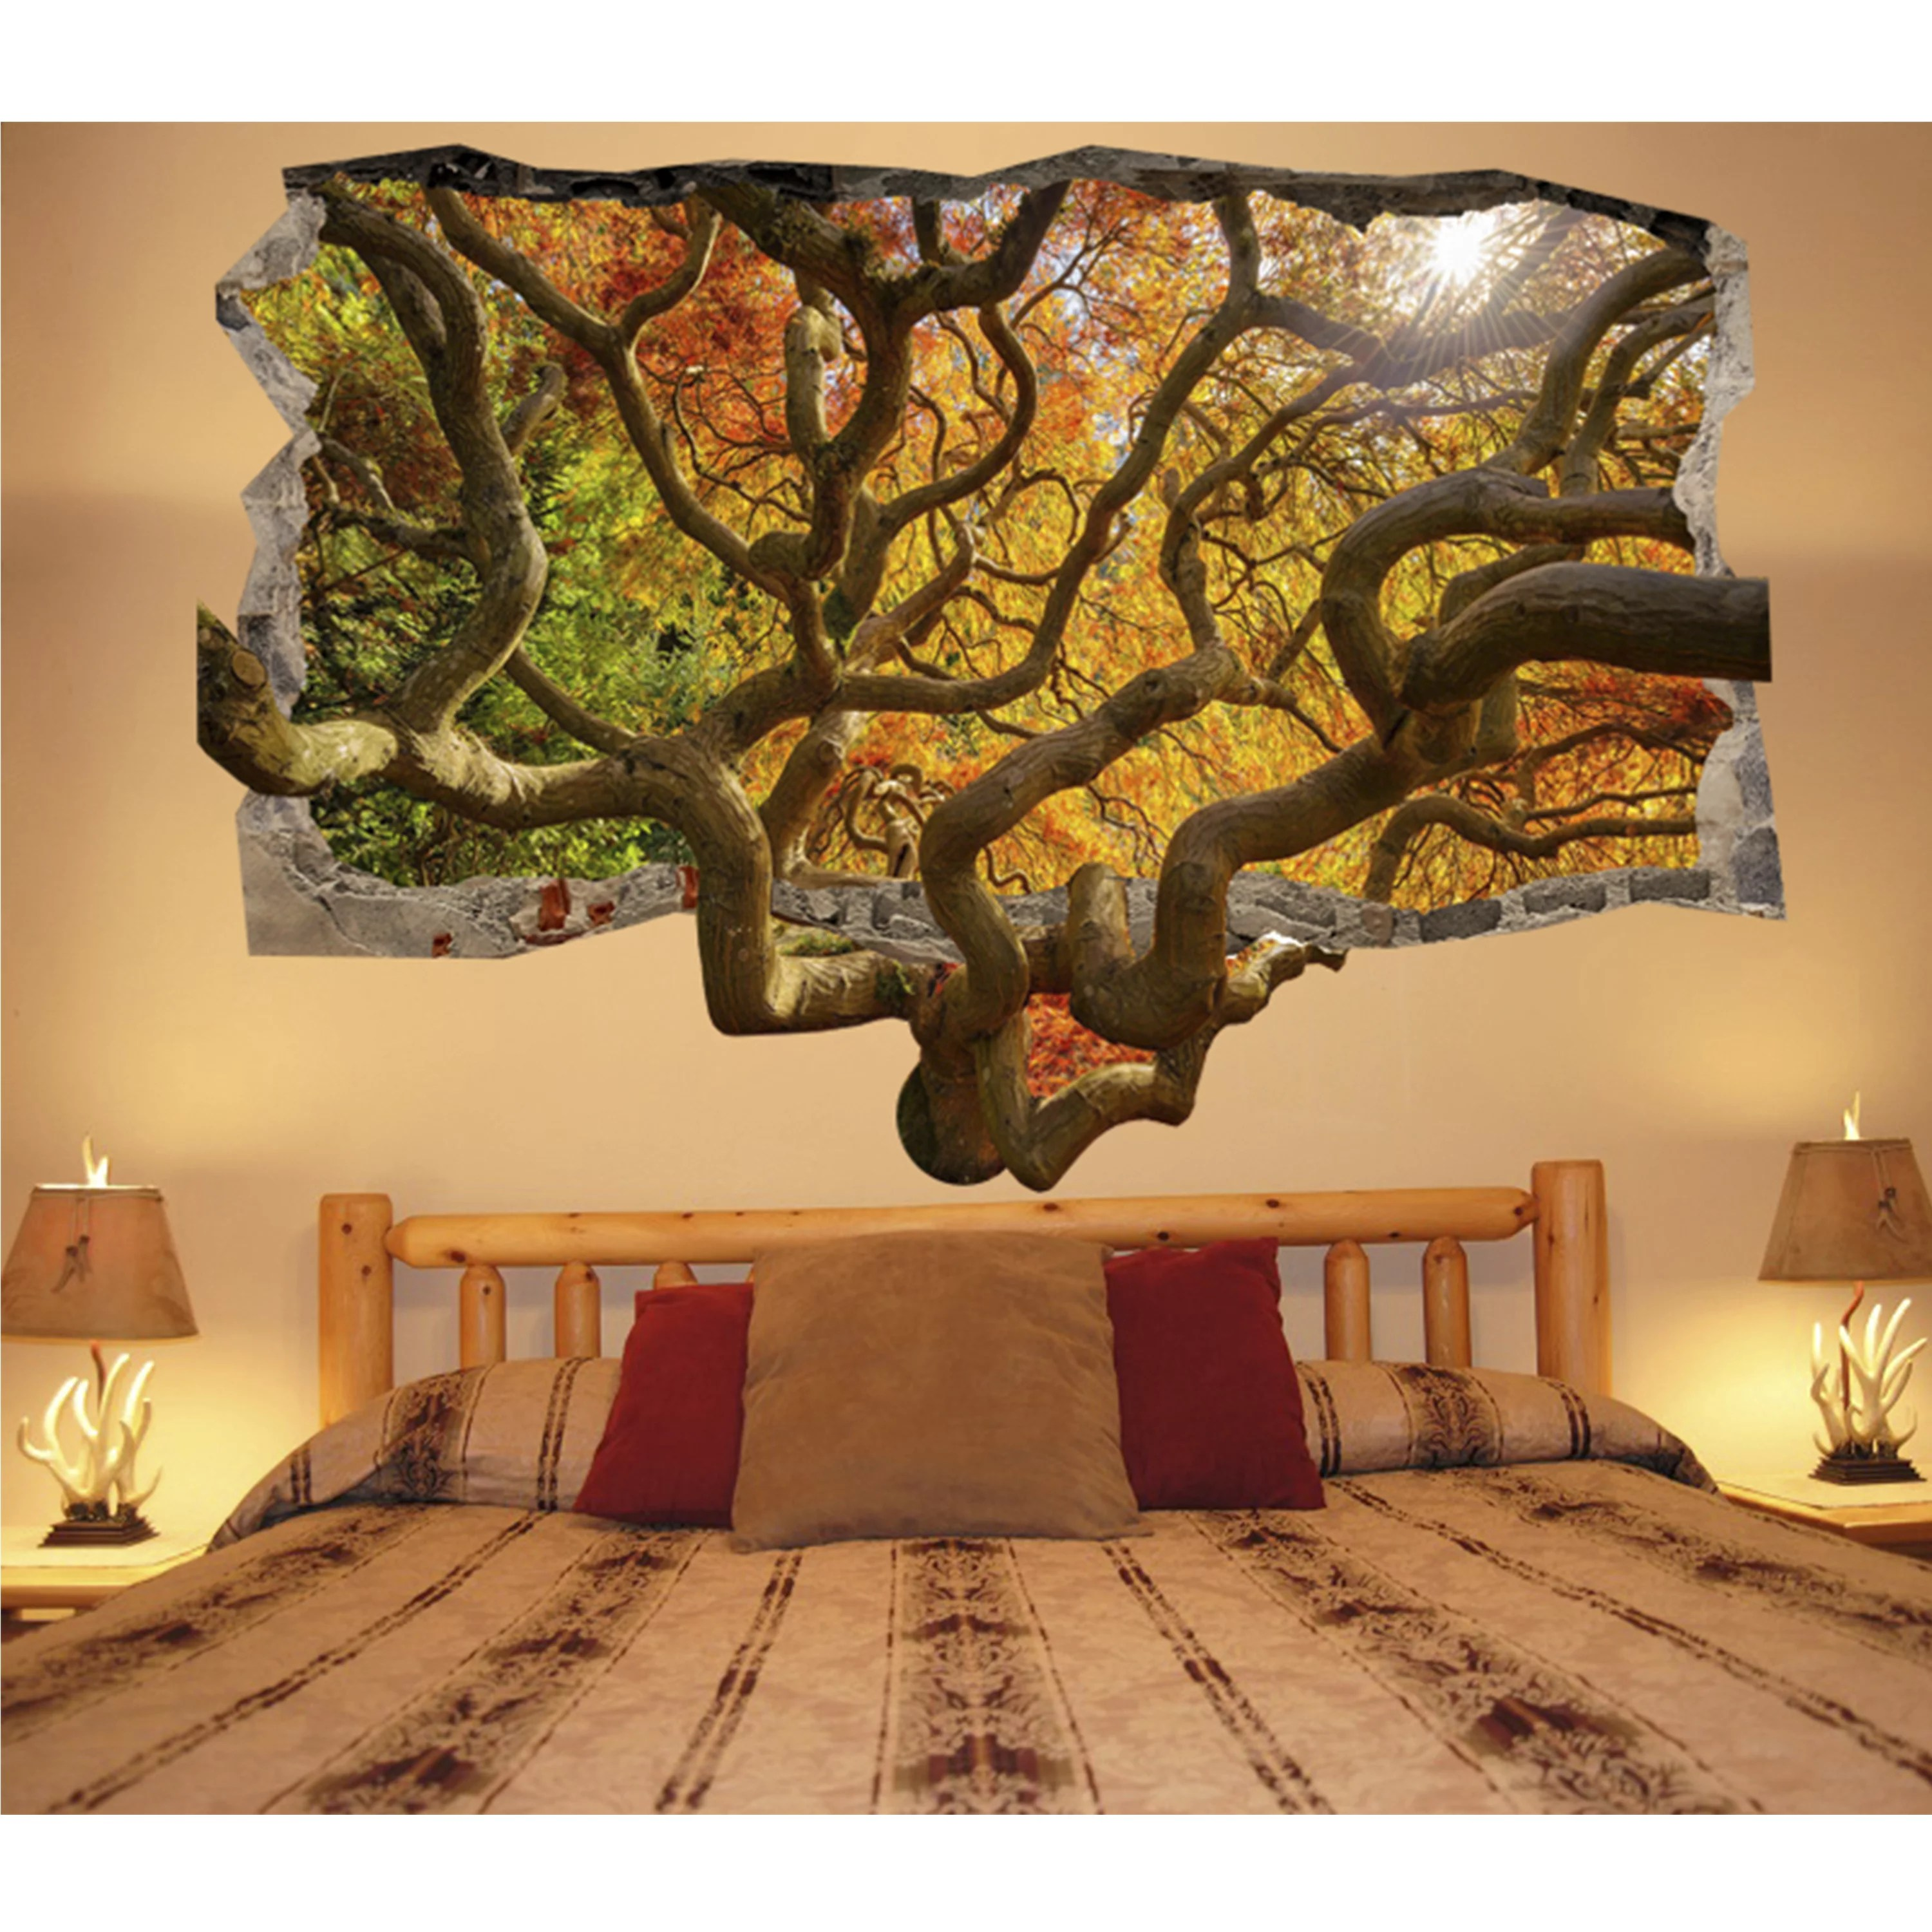 Wall Decoration Murale Startonight 3d Mural Wall Art Photo Decor Brown Tree Amazing Dual View Surprise Wall Mural Wallpaper For Bedroom Nature Wall Paper Art Gift Large